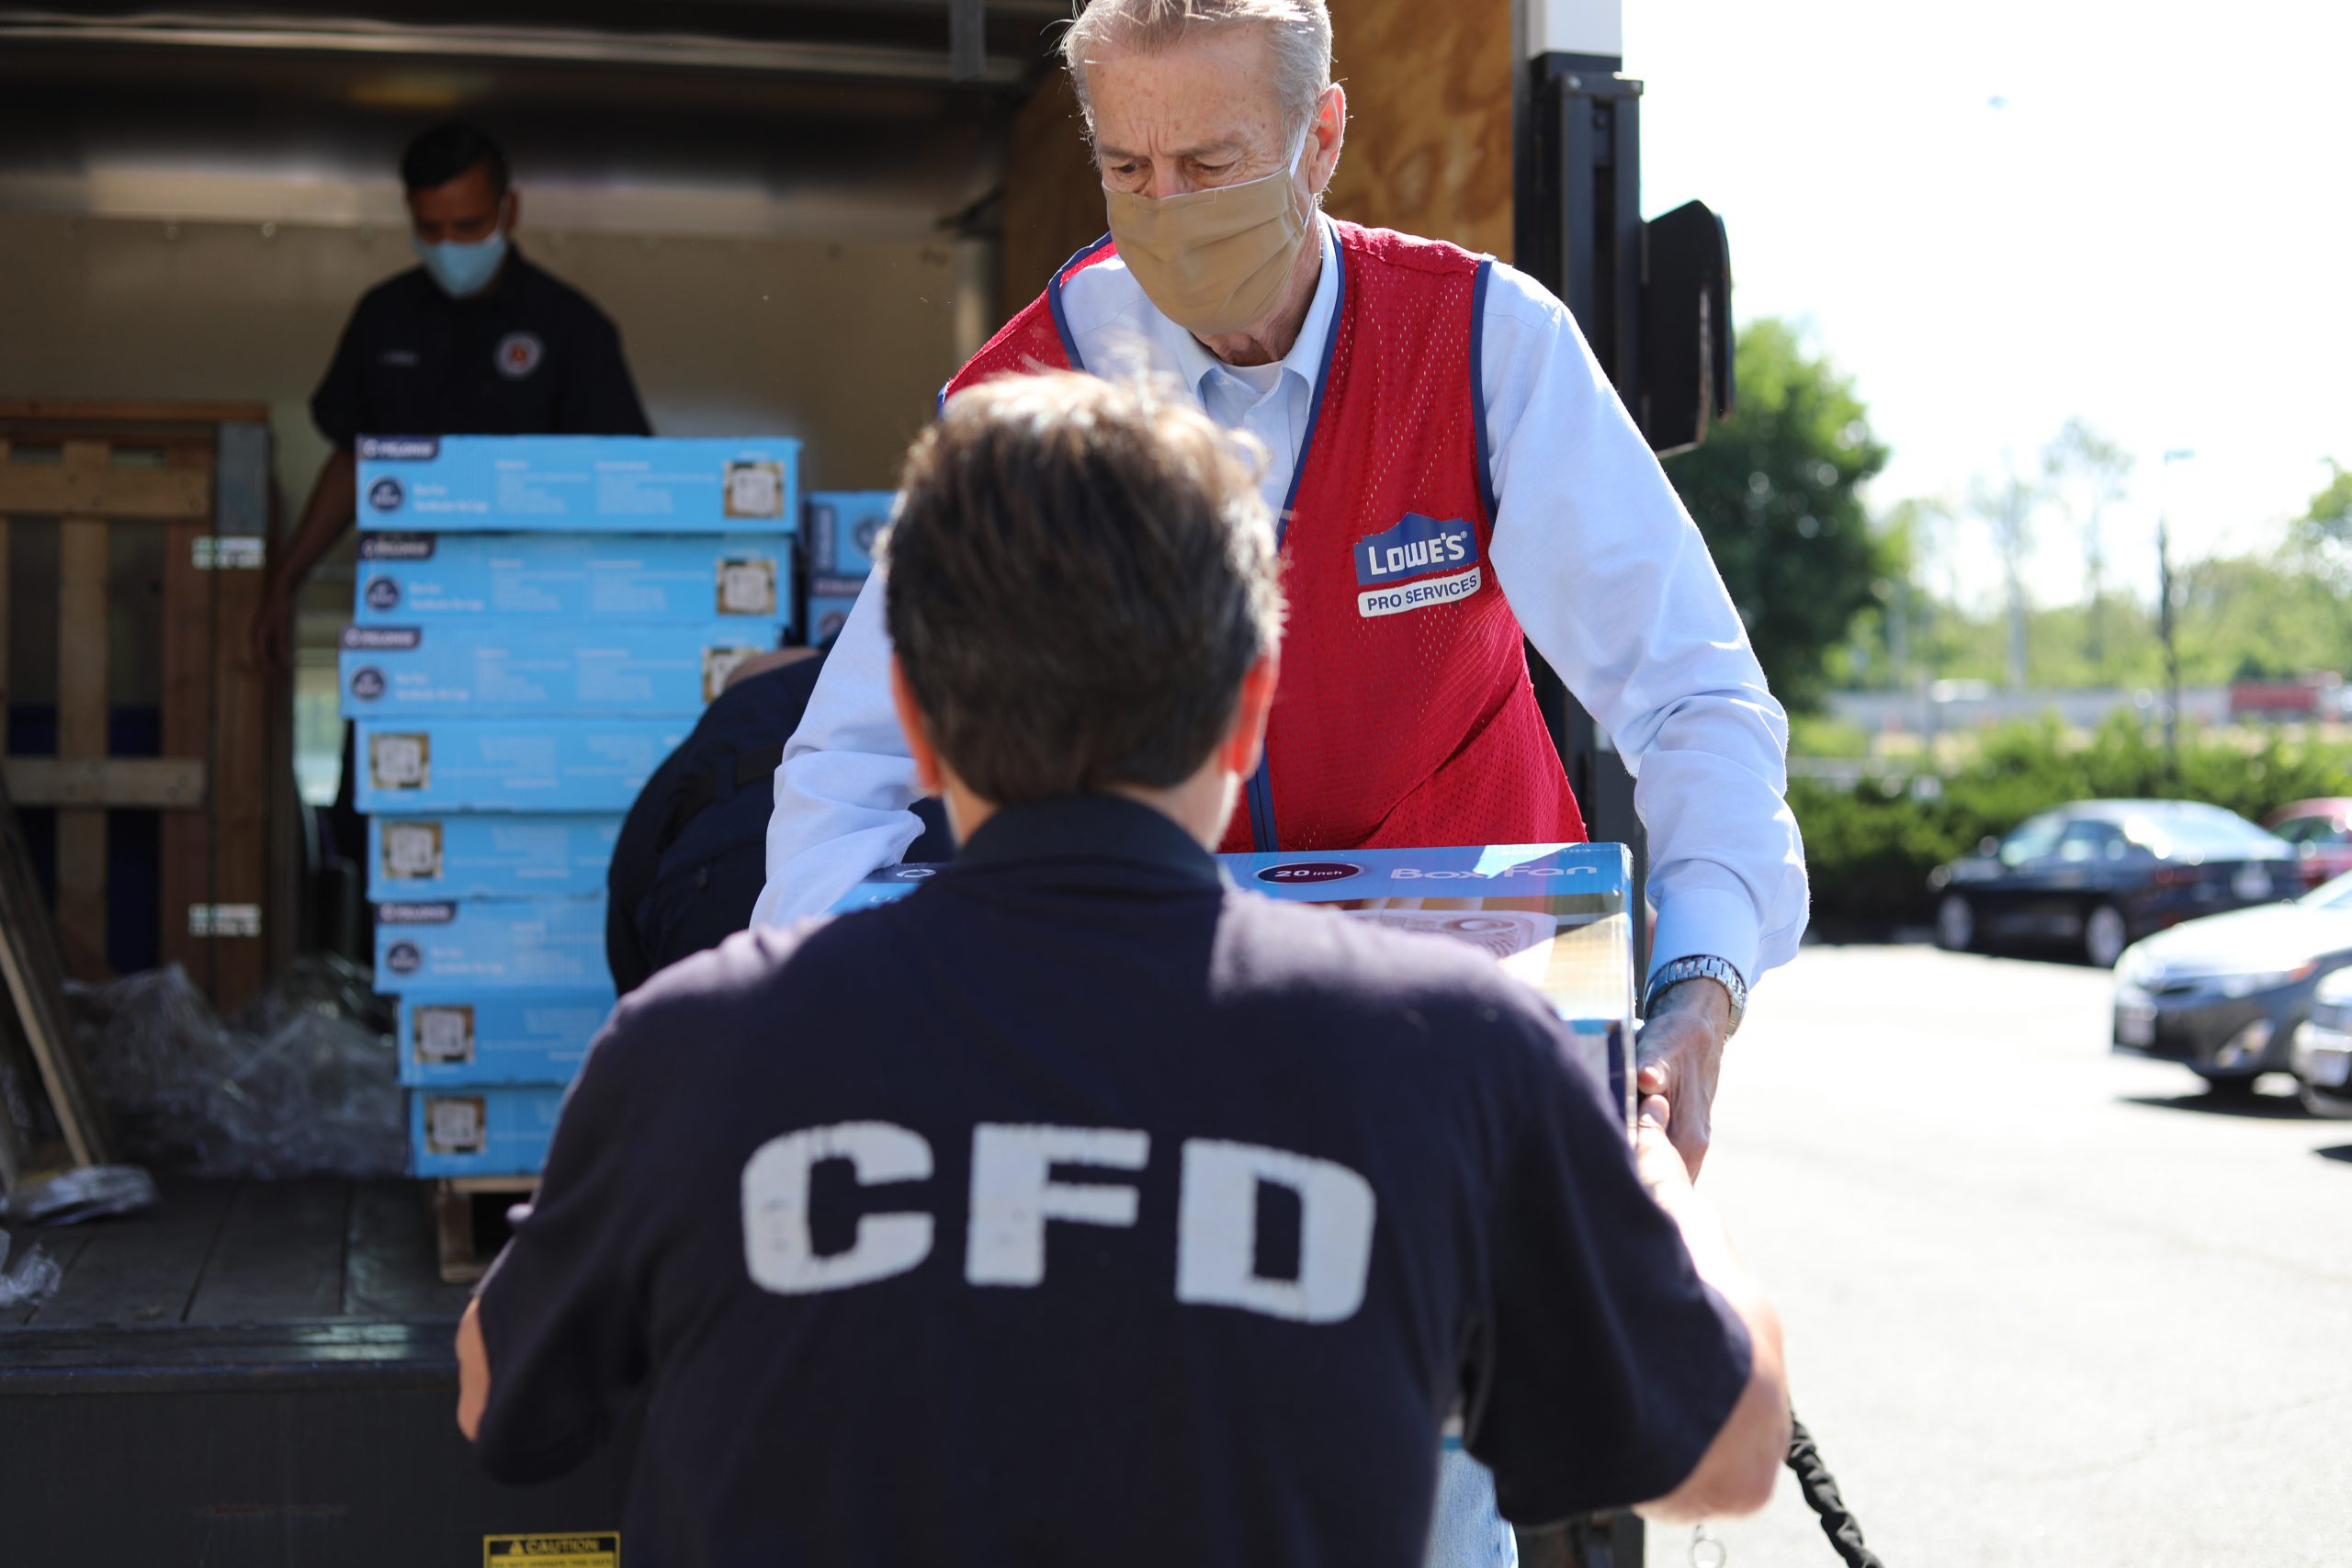 A Lowe's employee hands off a stack of fans to a Columbus firefighter.